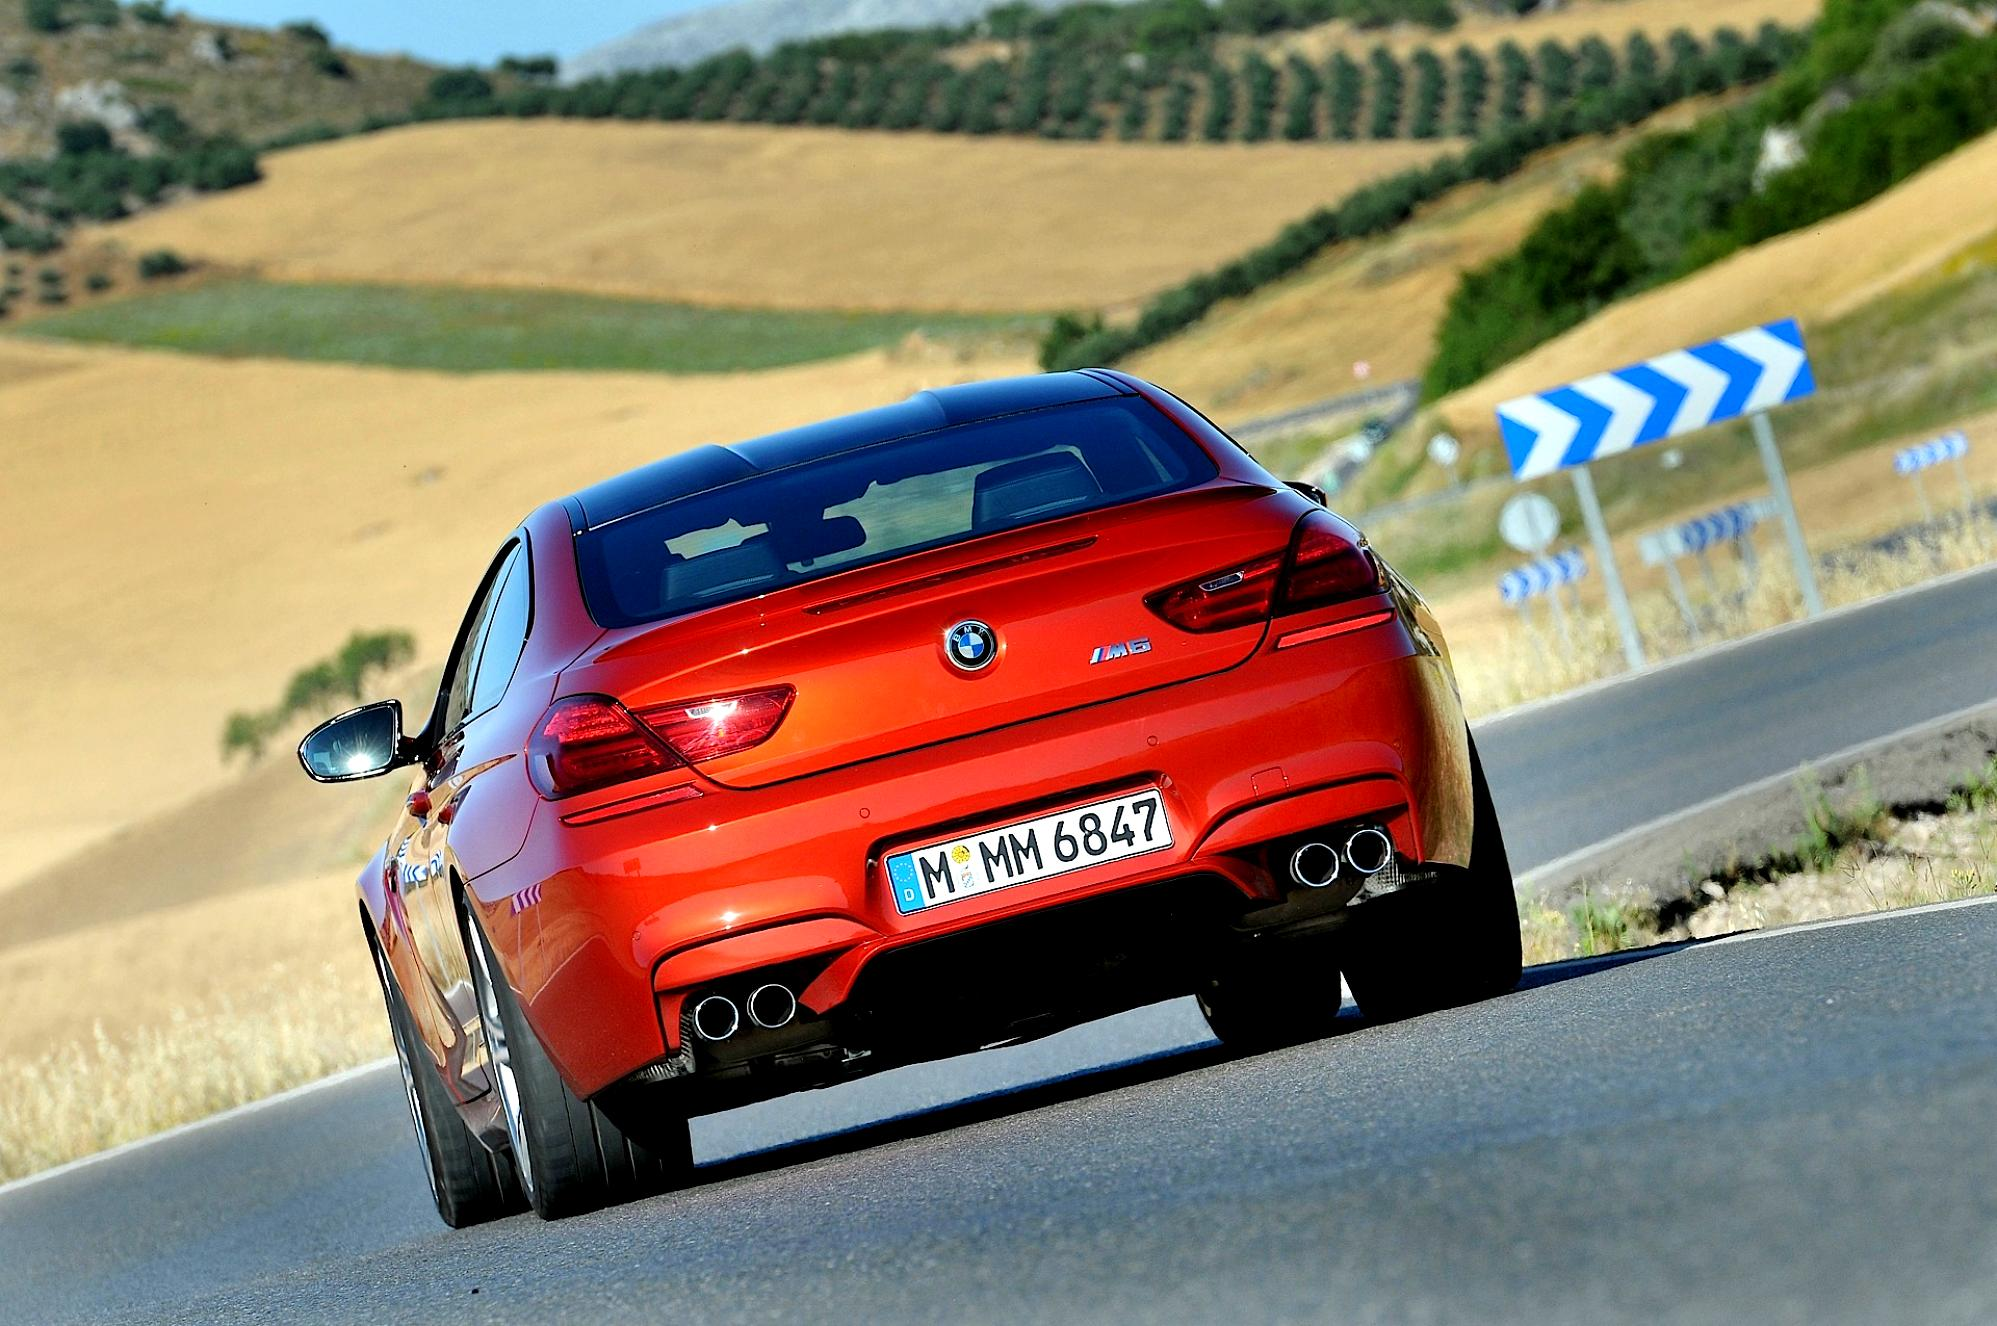 BMW M6 Coupe F13 2012 #72